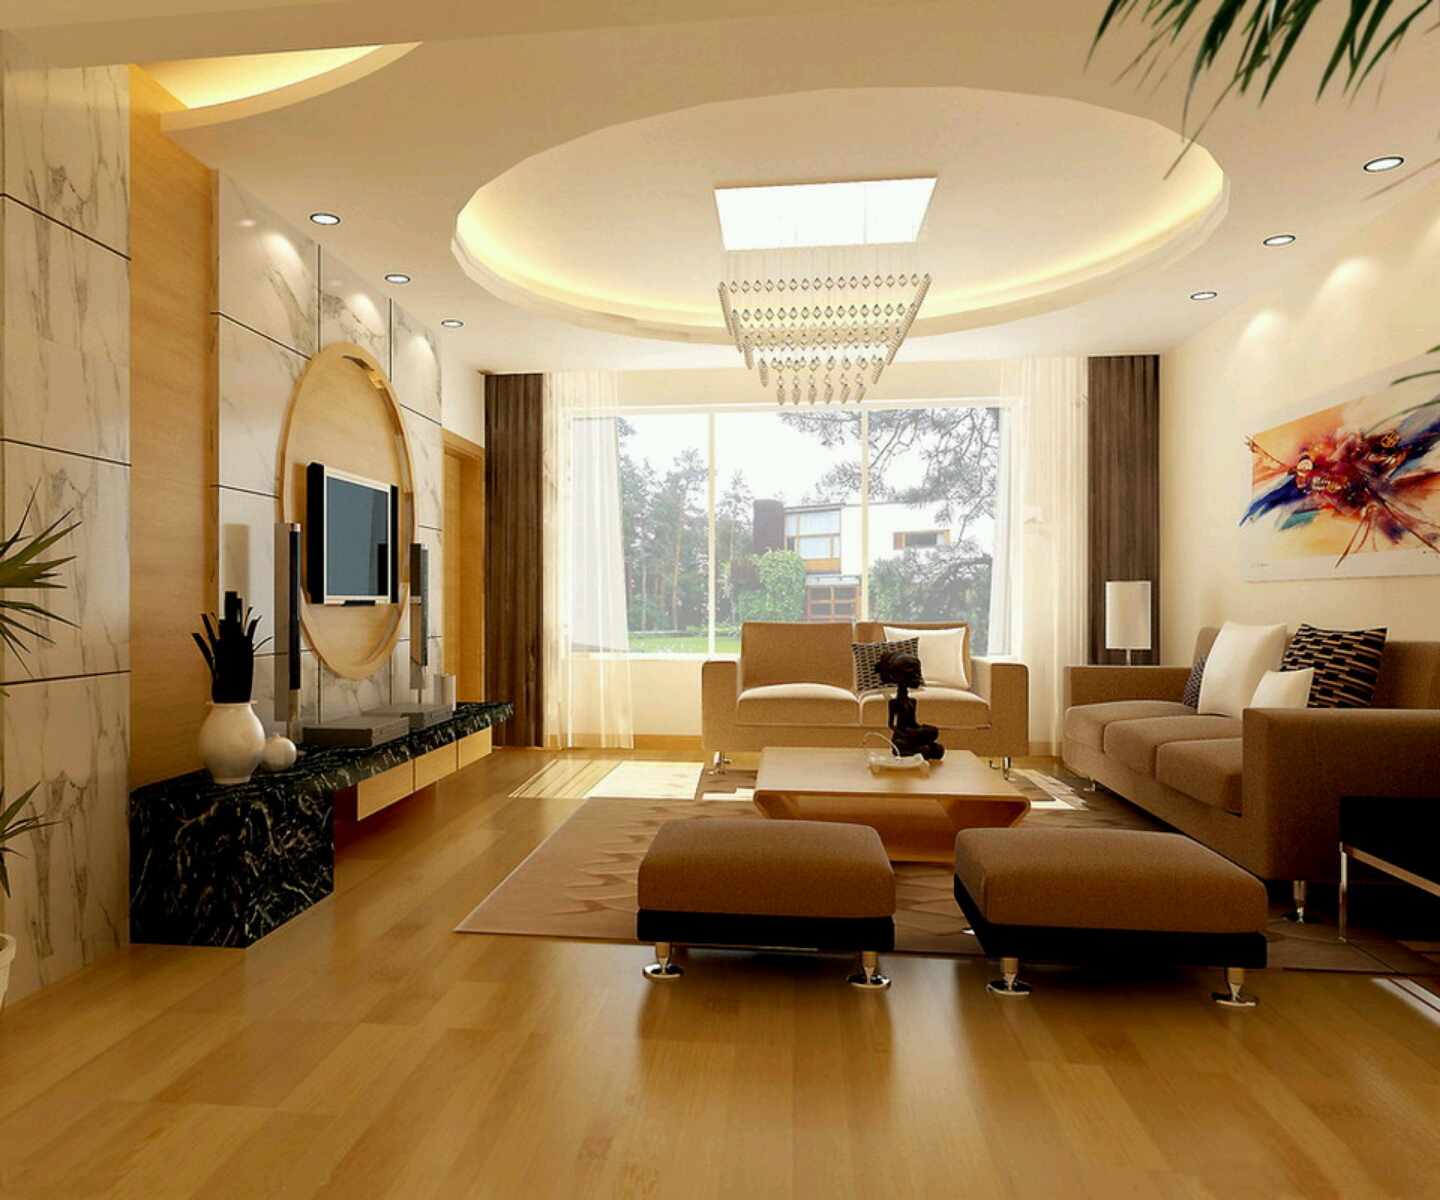 Modern interior decoration living rooms ceiling designs Pictures of new homes interior